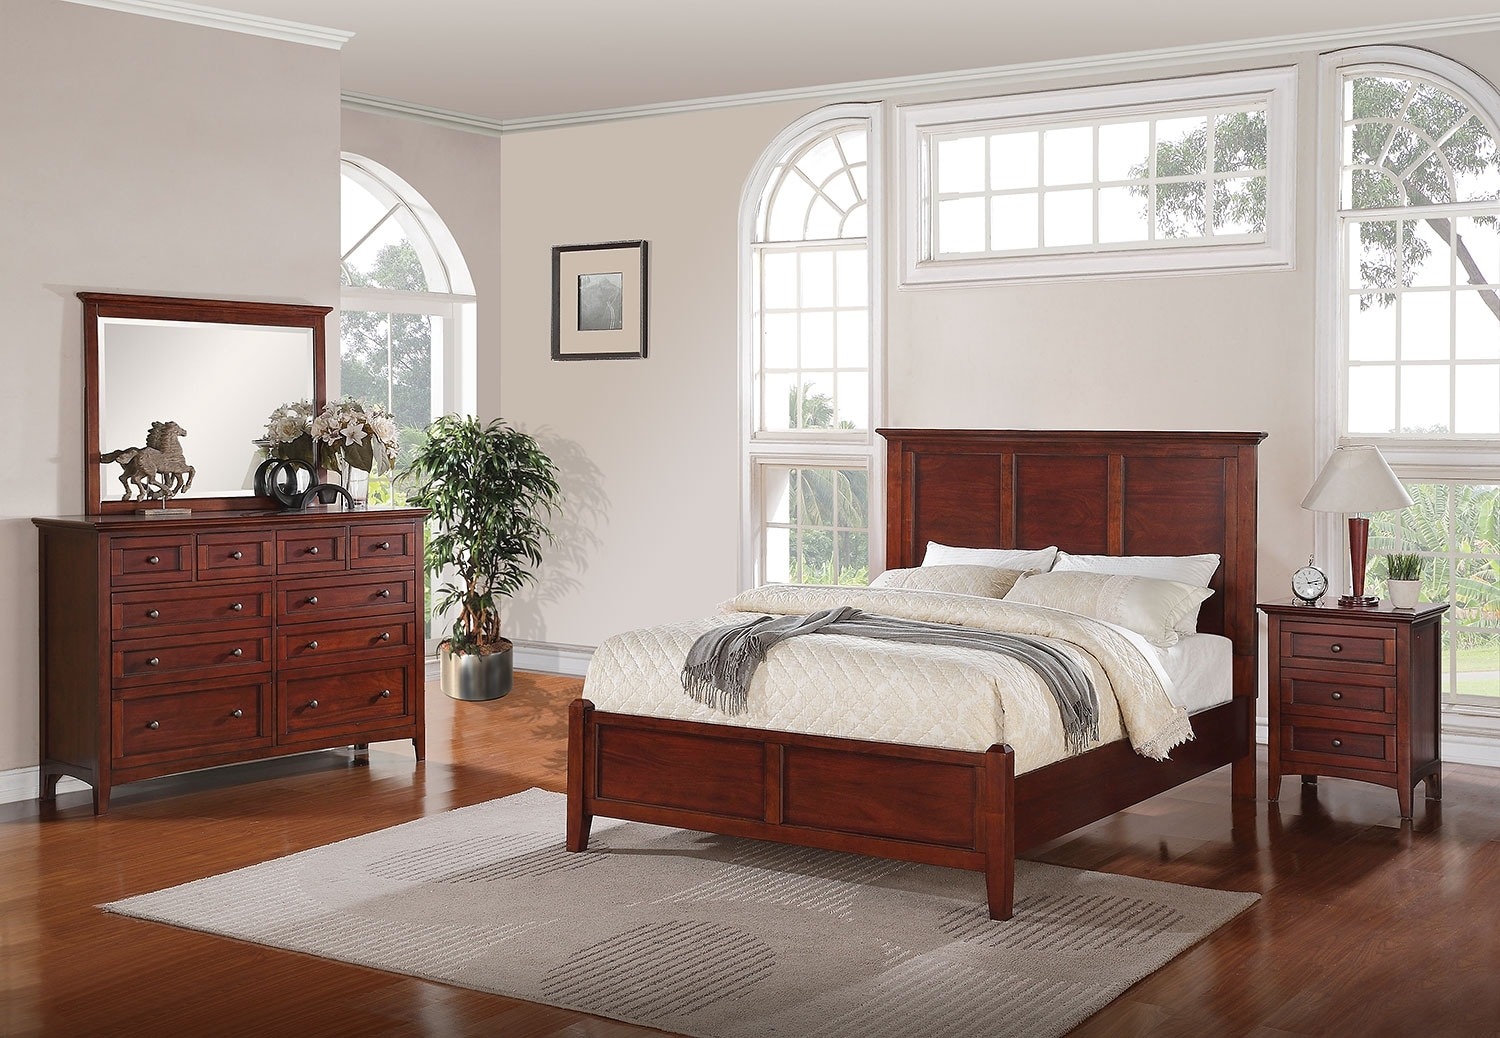 Bedroom Furniture - Forest Lake 5-Piece King Bedroom Set - Mahogany